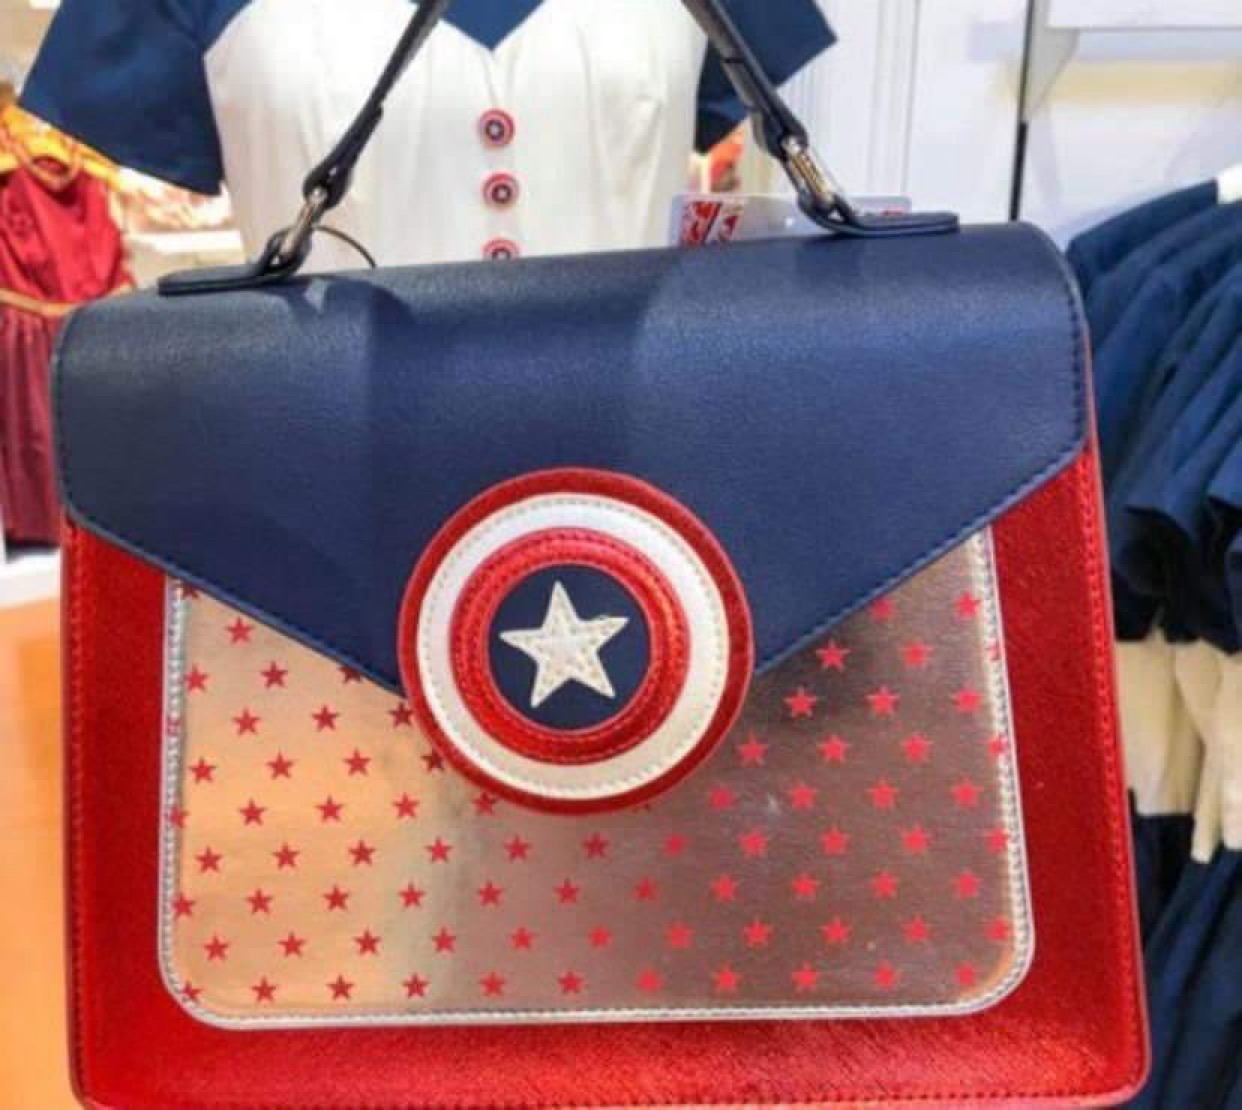 New Captain America Dress & Handbag at WDW 2